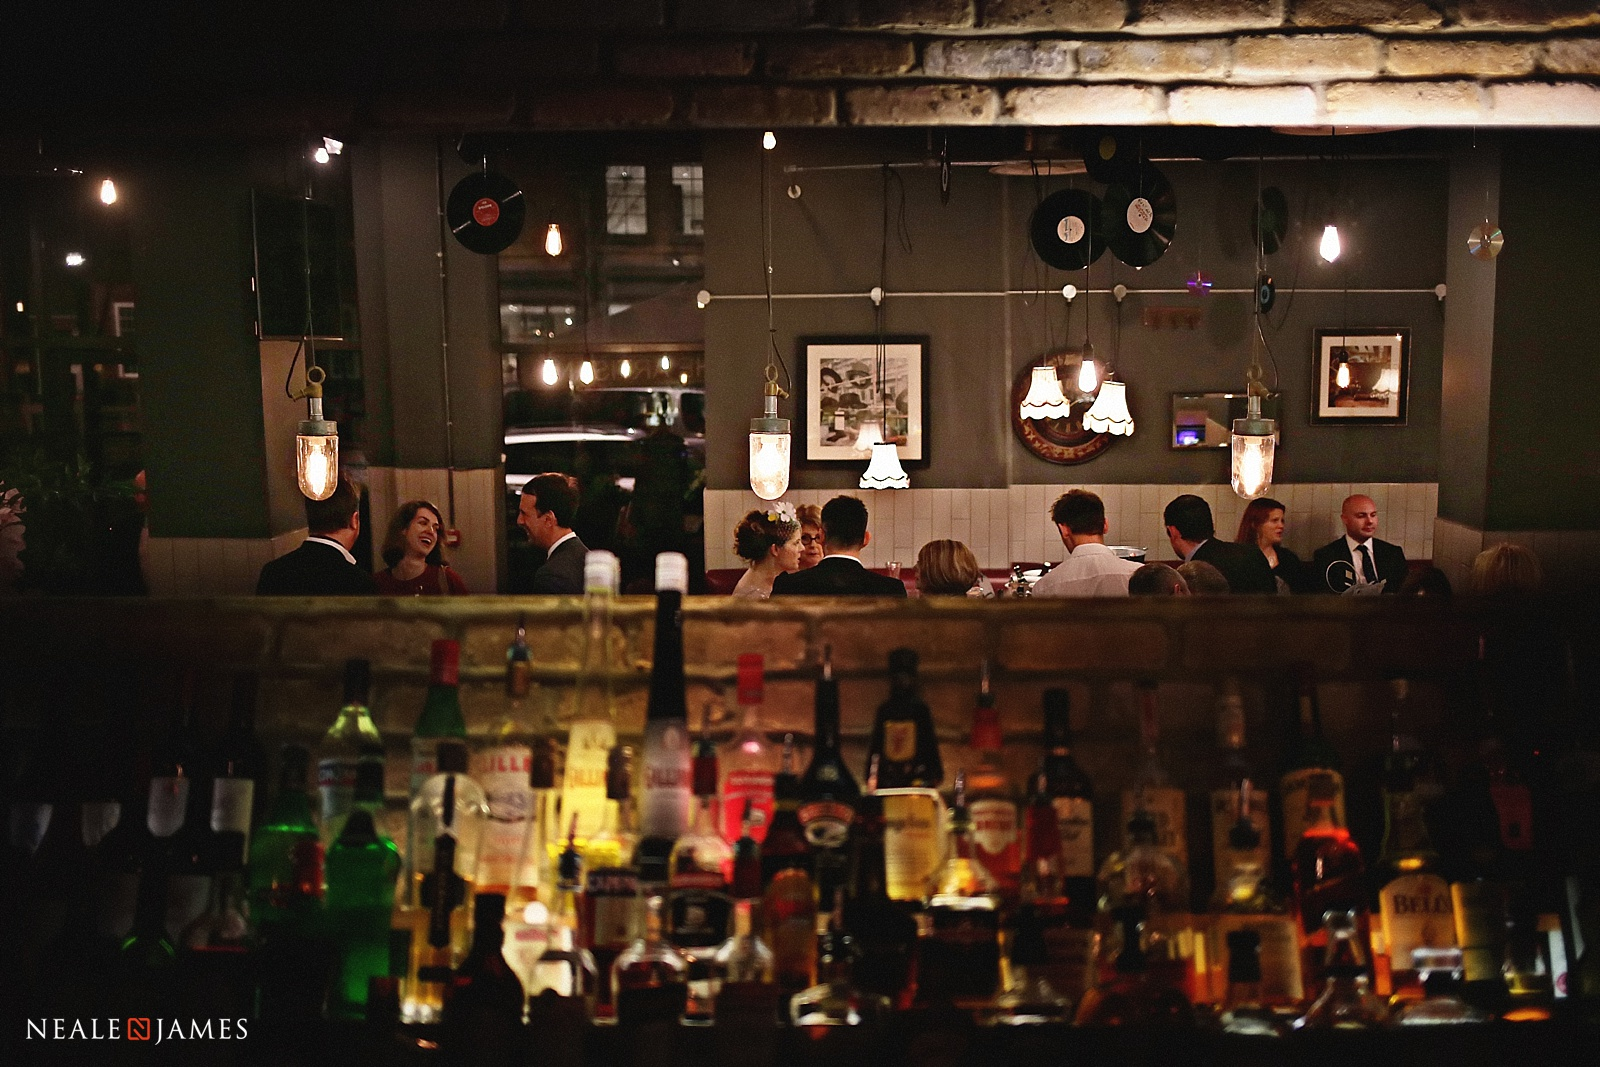 Colour picture of guests in a bar